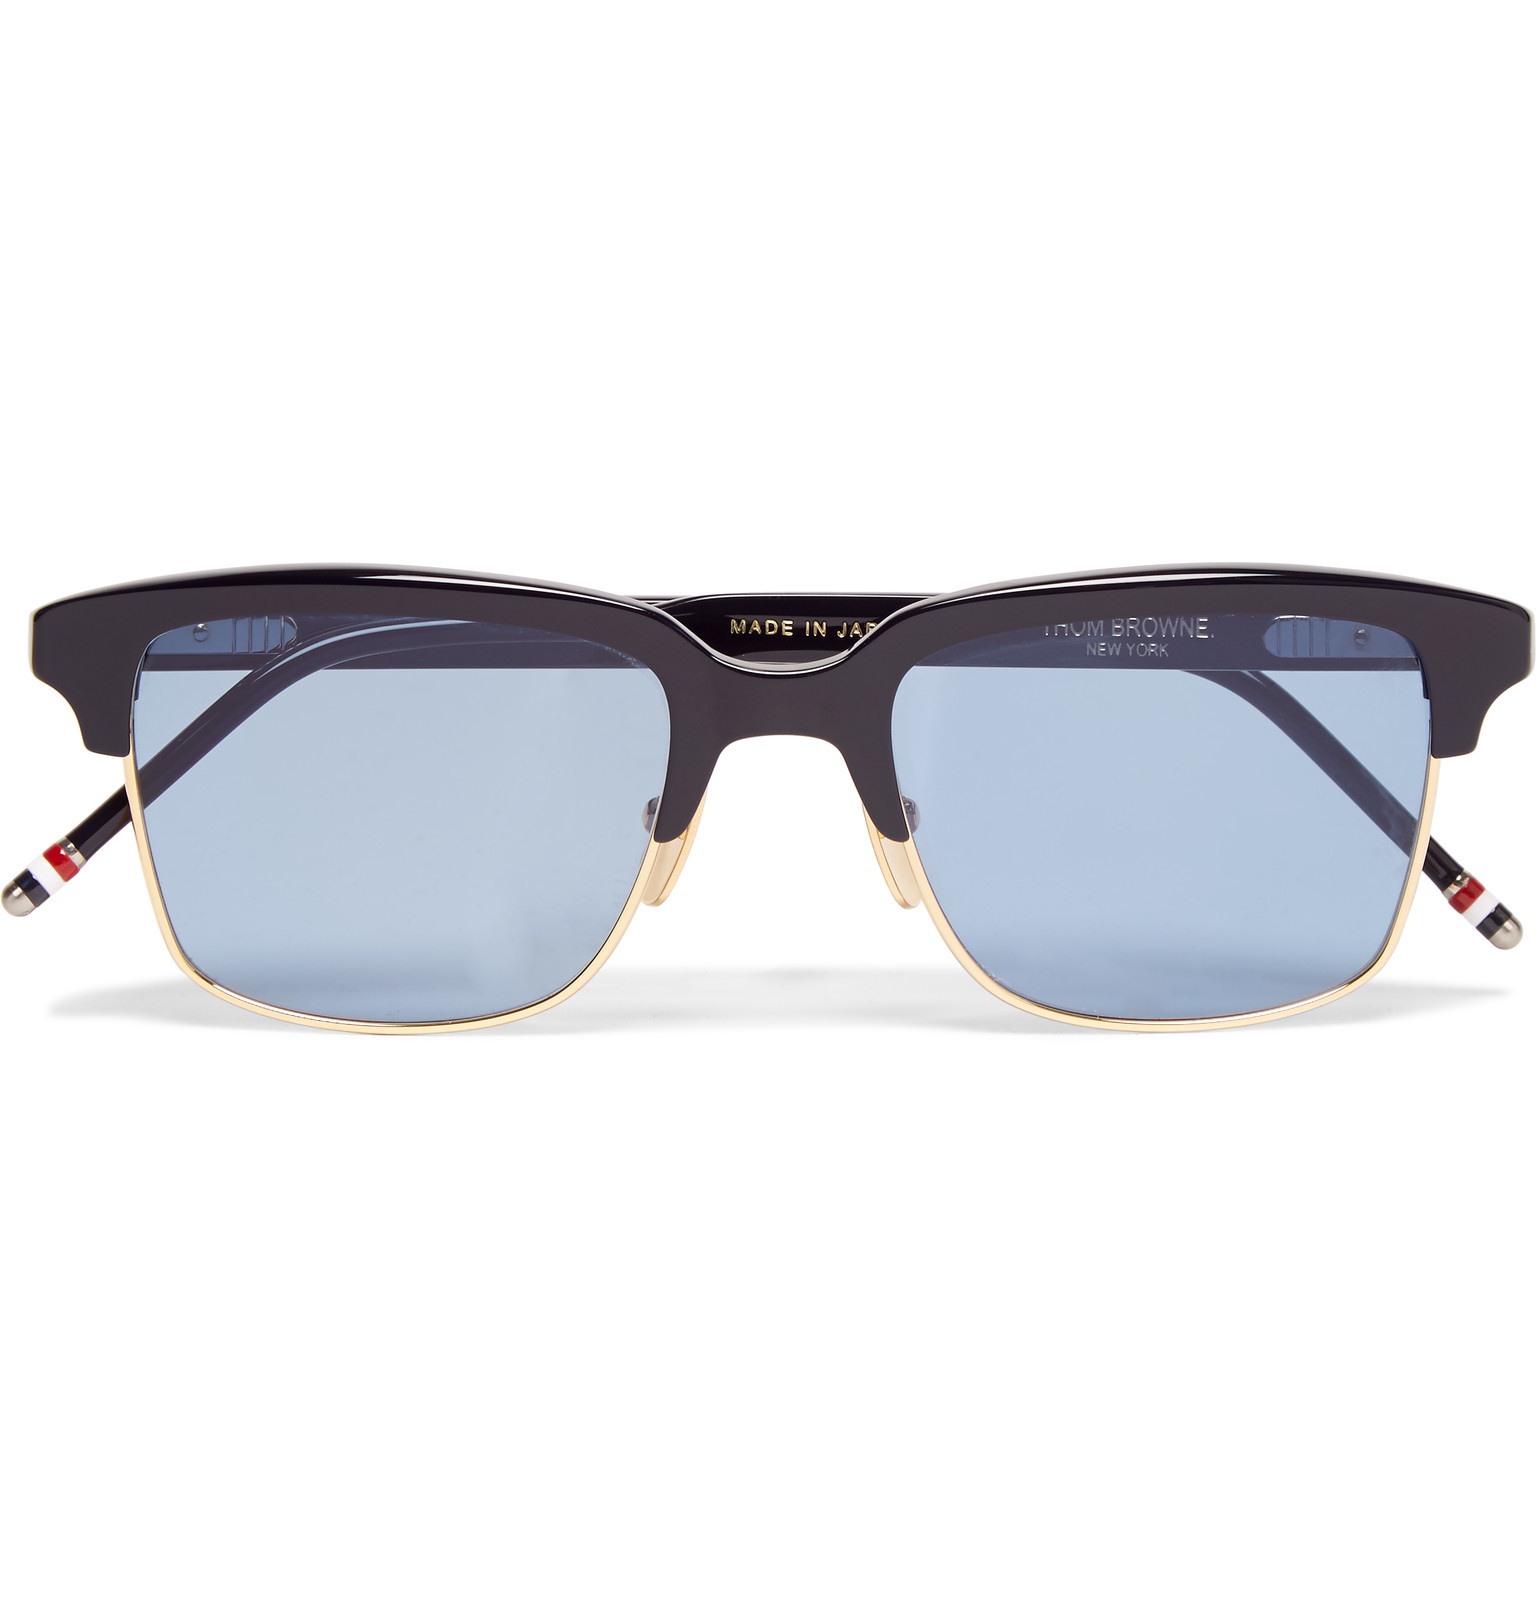 2f91ab11f8a3 Thom Browne Square-frame Acetate And Gold-tone Sunglasses in Blue ...